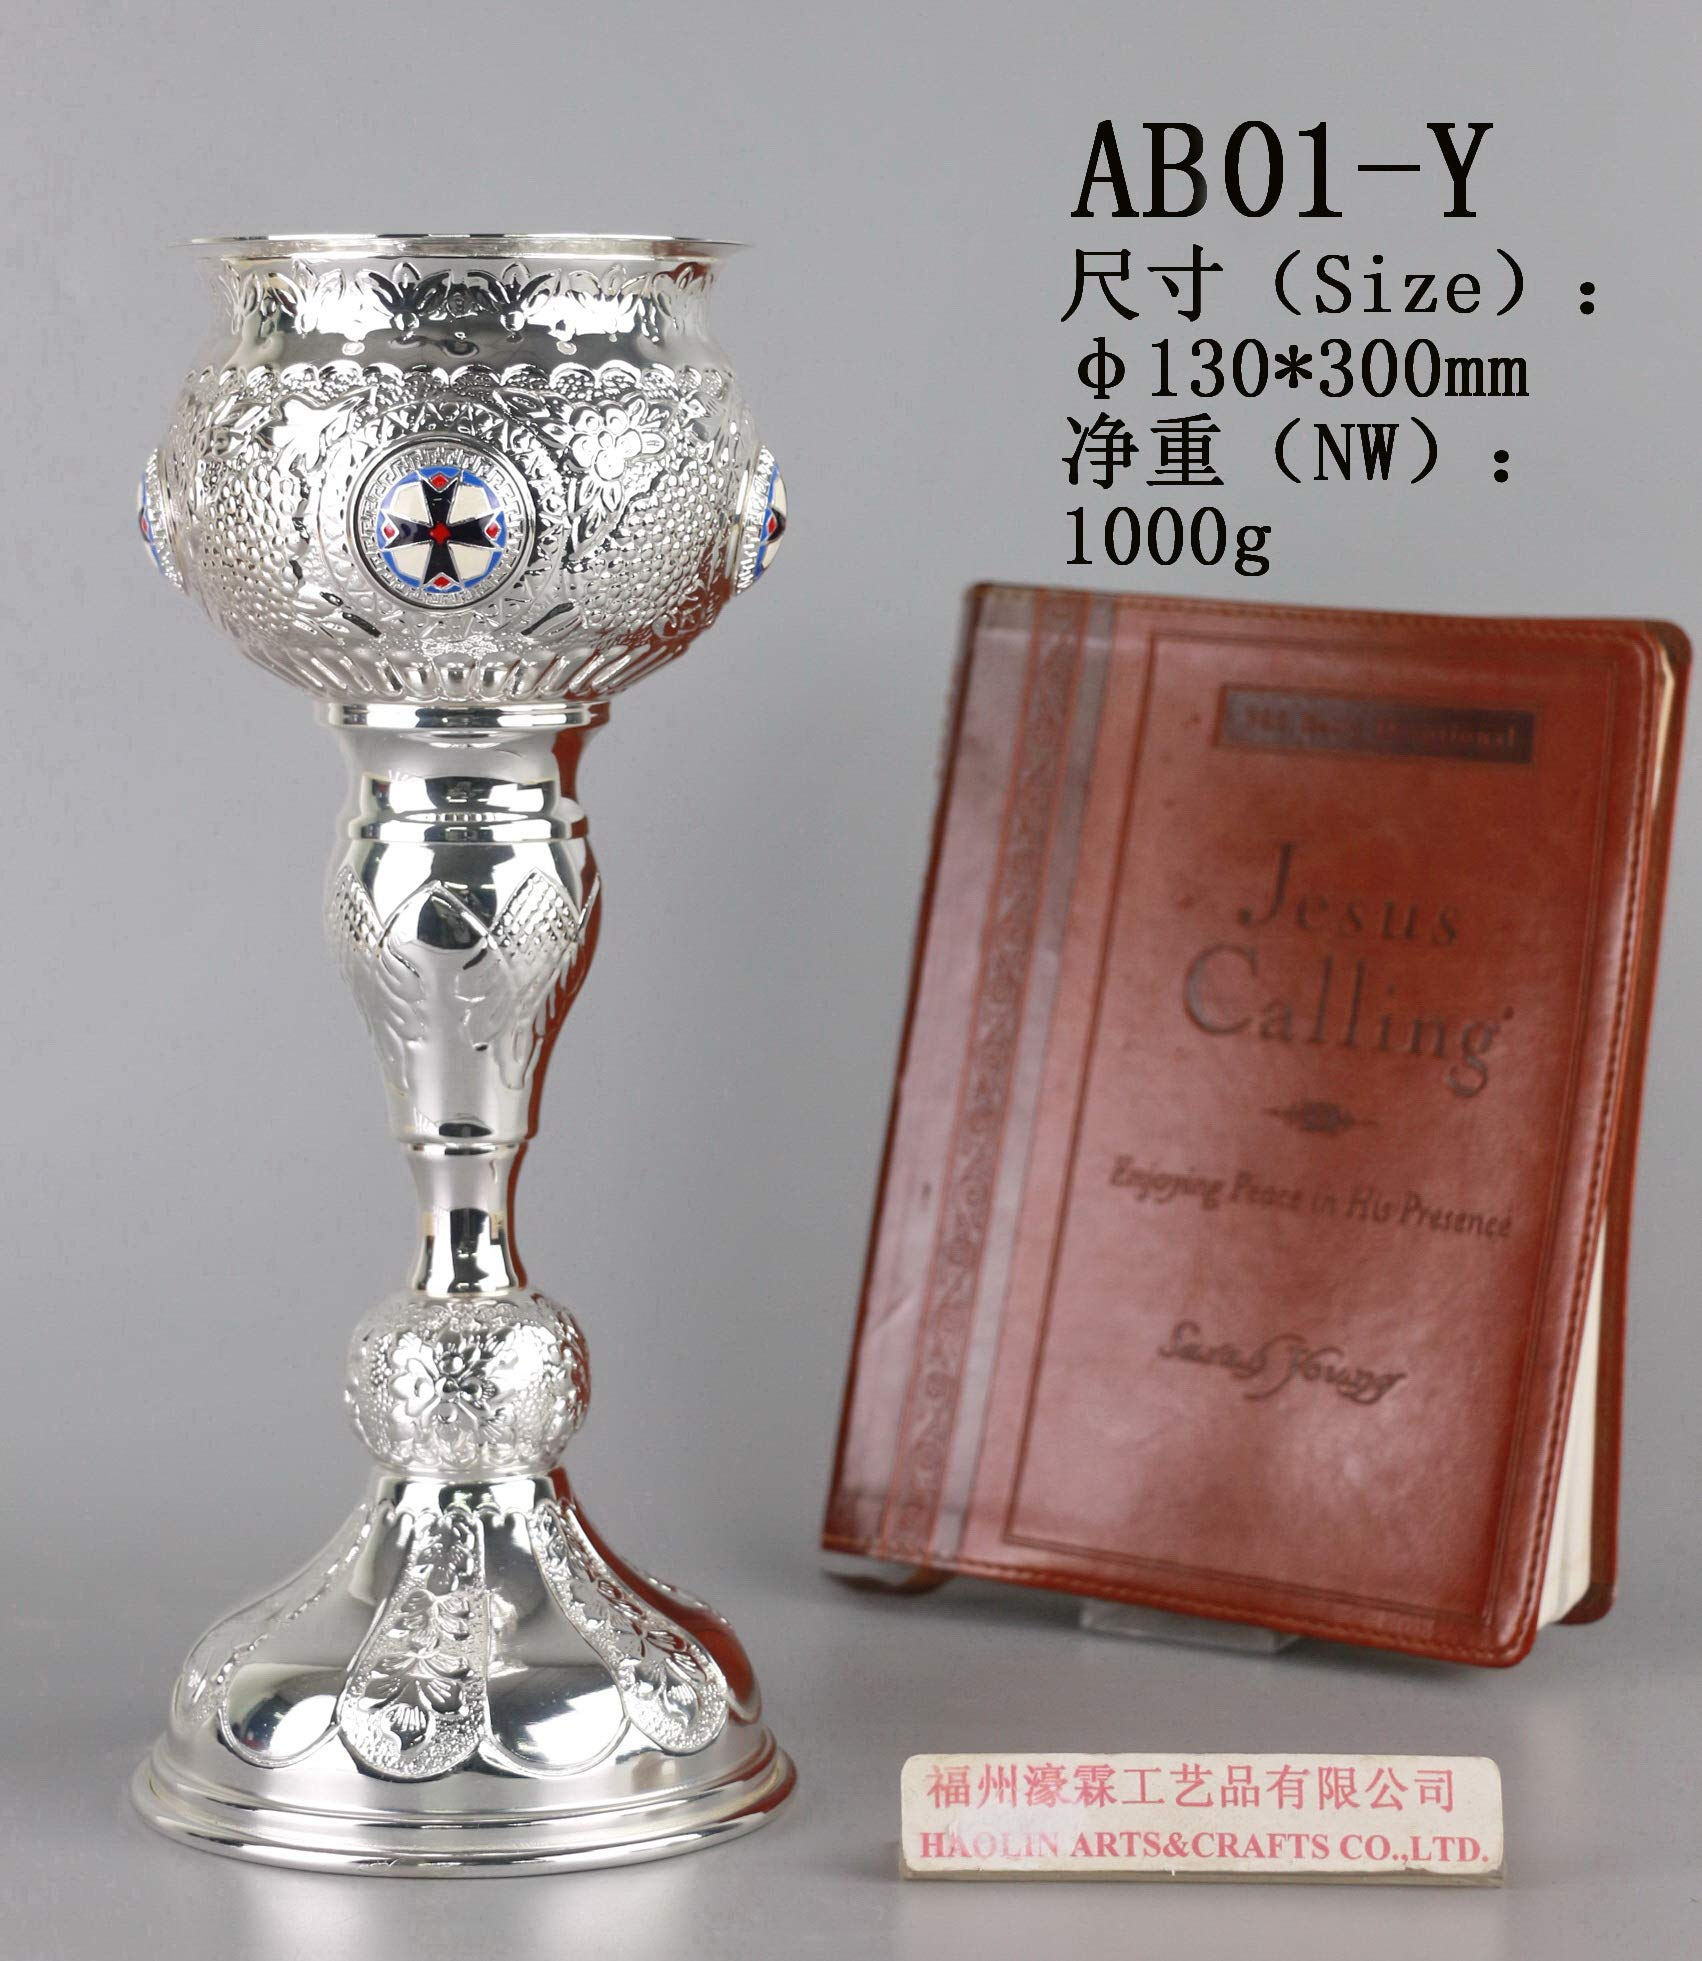 Brass Chalice Cup and Plate Altar Religion AB01-Y Our Company Have 101 Kinds of Chalice and Plate for Your Choice.